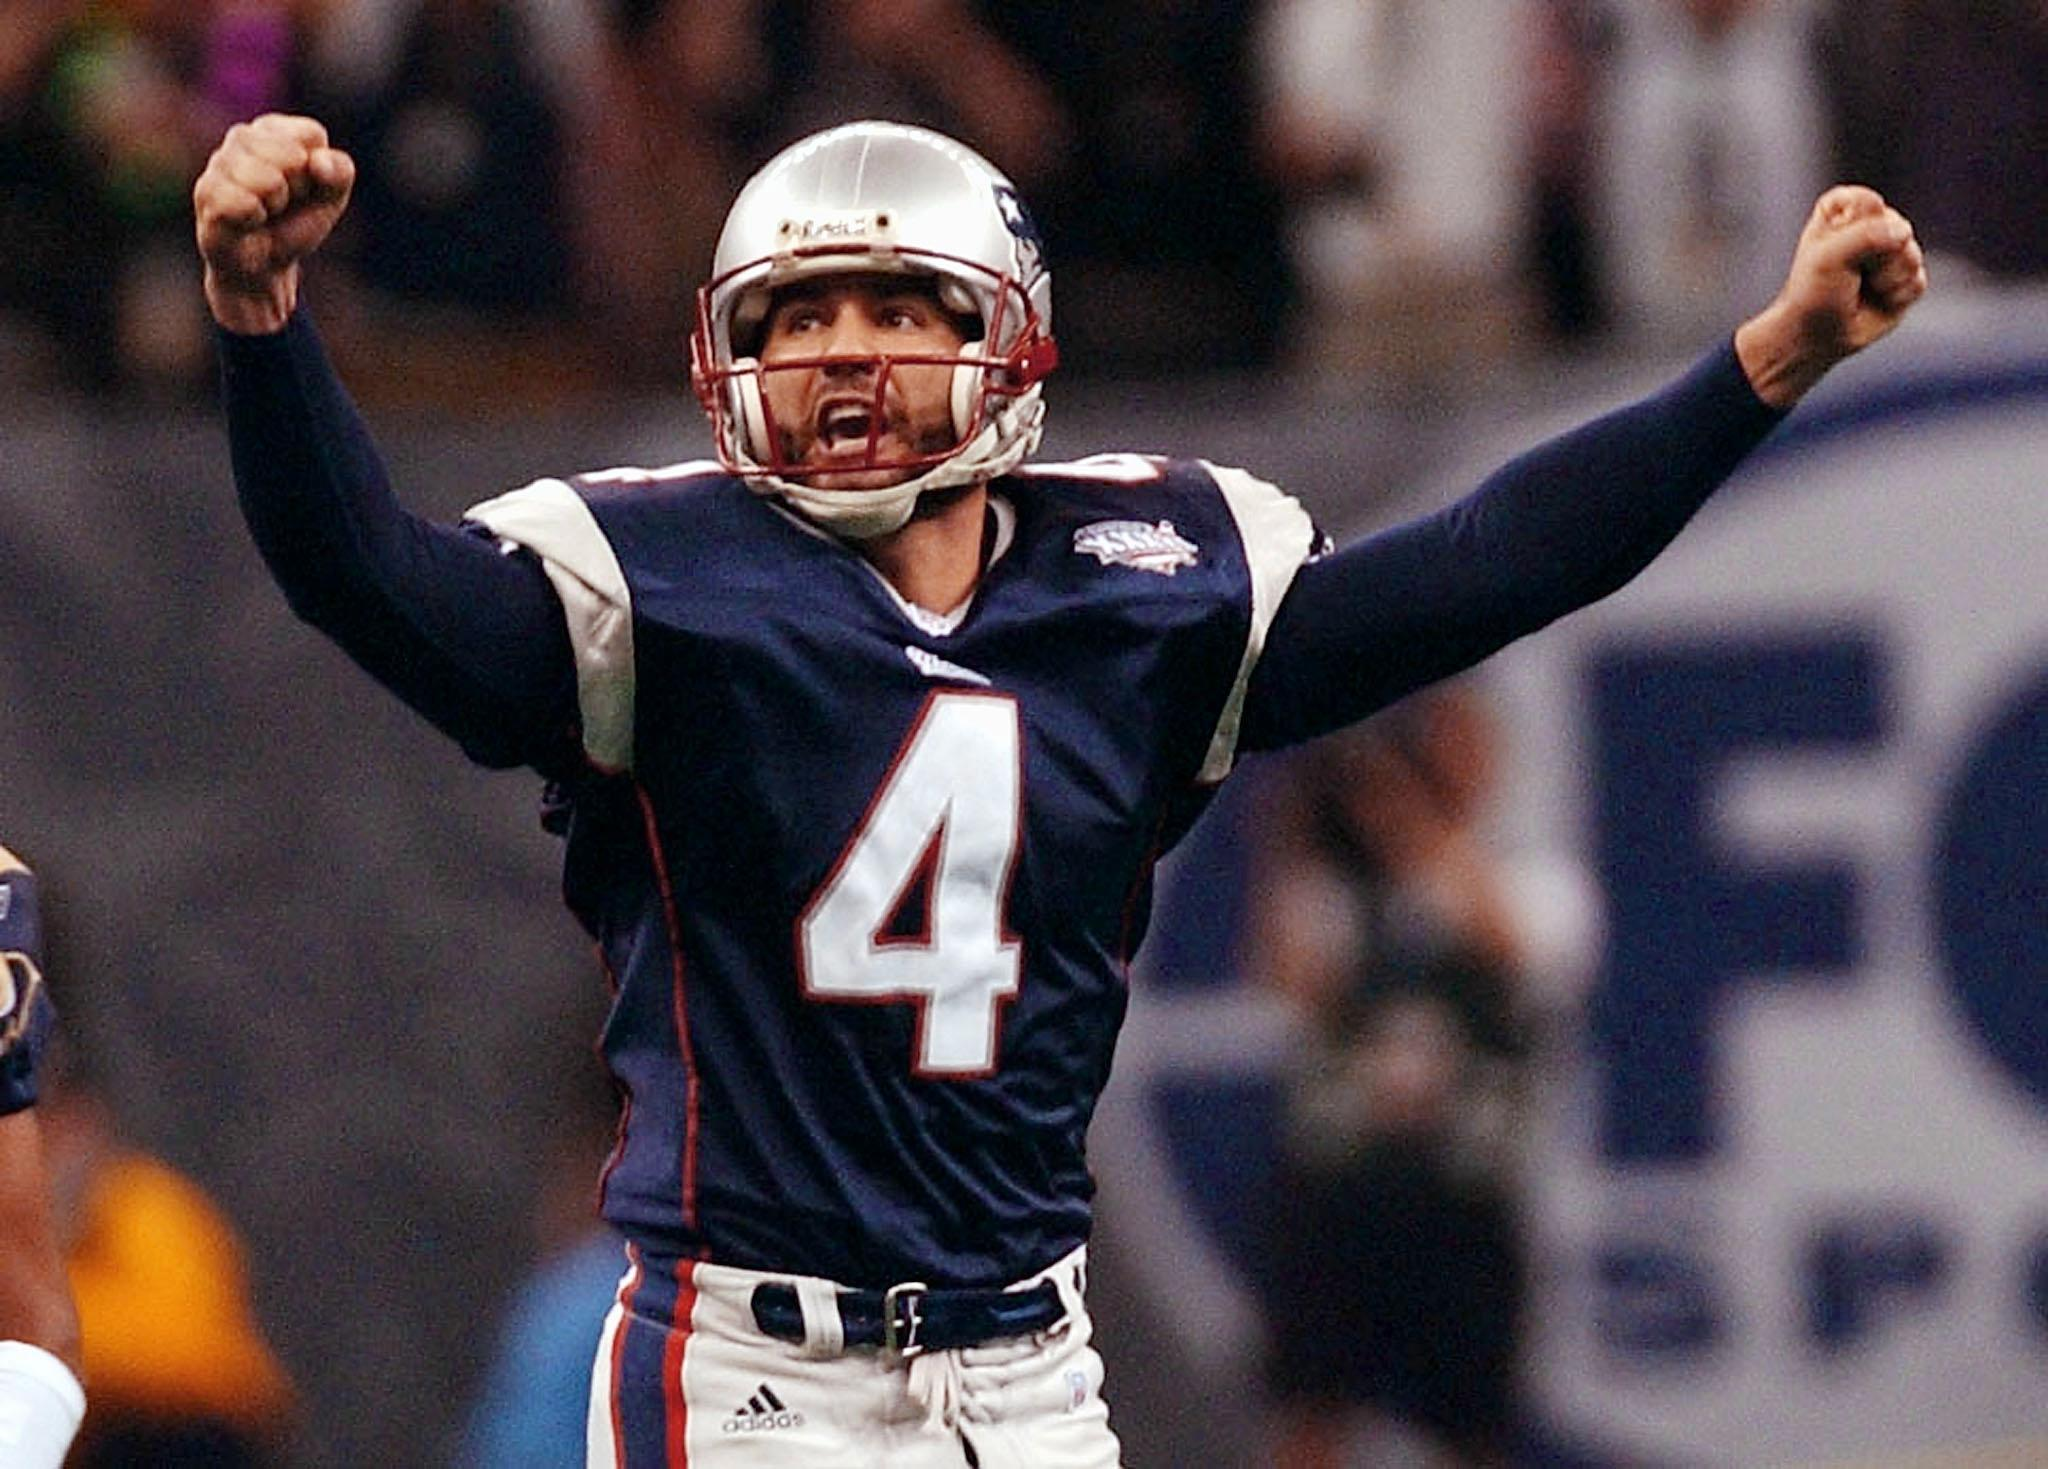 New England Patriots kicker Adam Vinatieri celebrates his game-winning field goal in the second half 03 February, 2002 of Super Bowl XXXVI in New Orleans, Louisiana. The Patriots defeated the St. Louis Rams 20-17 for the NFL championship.